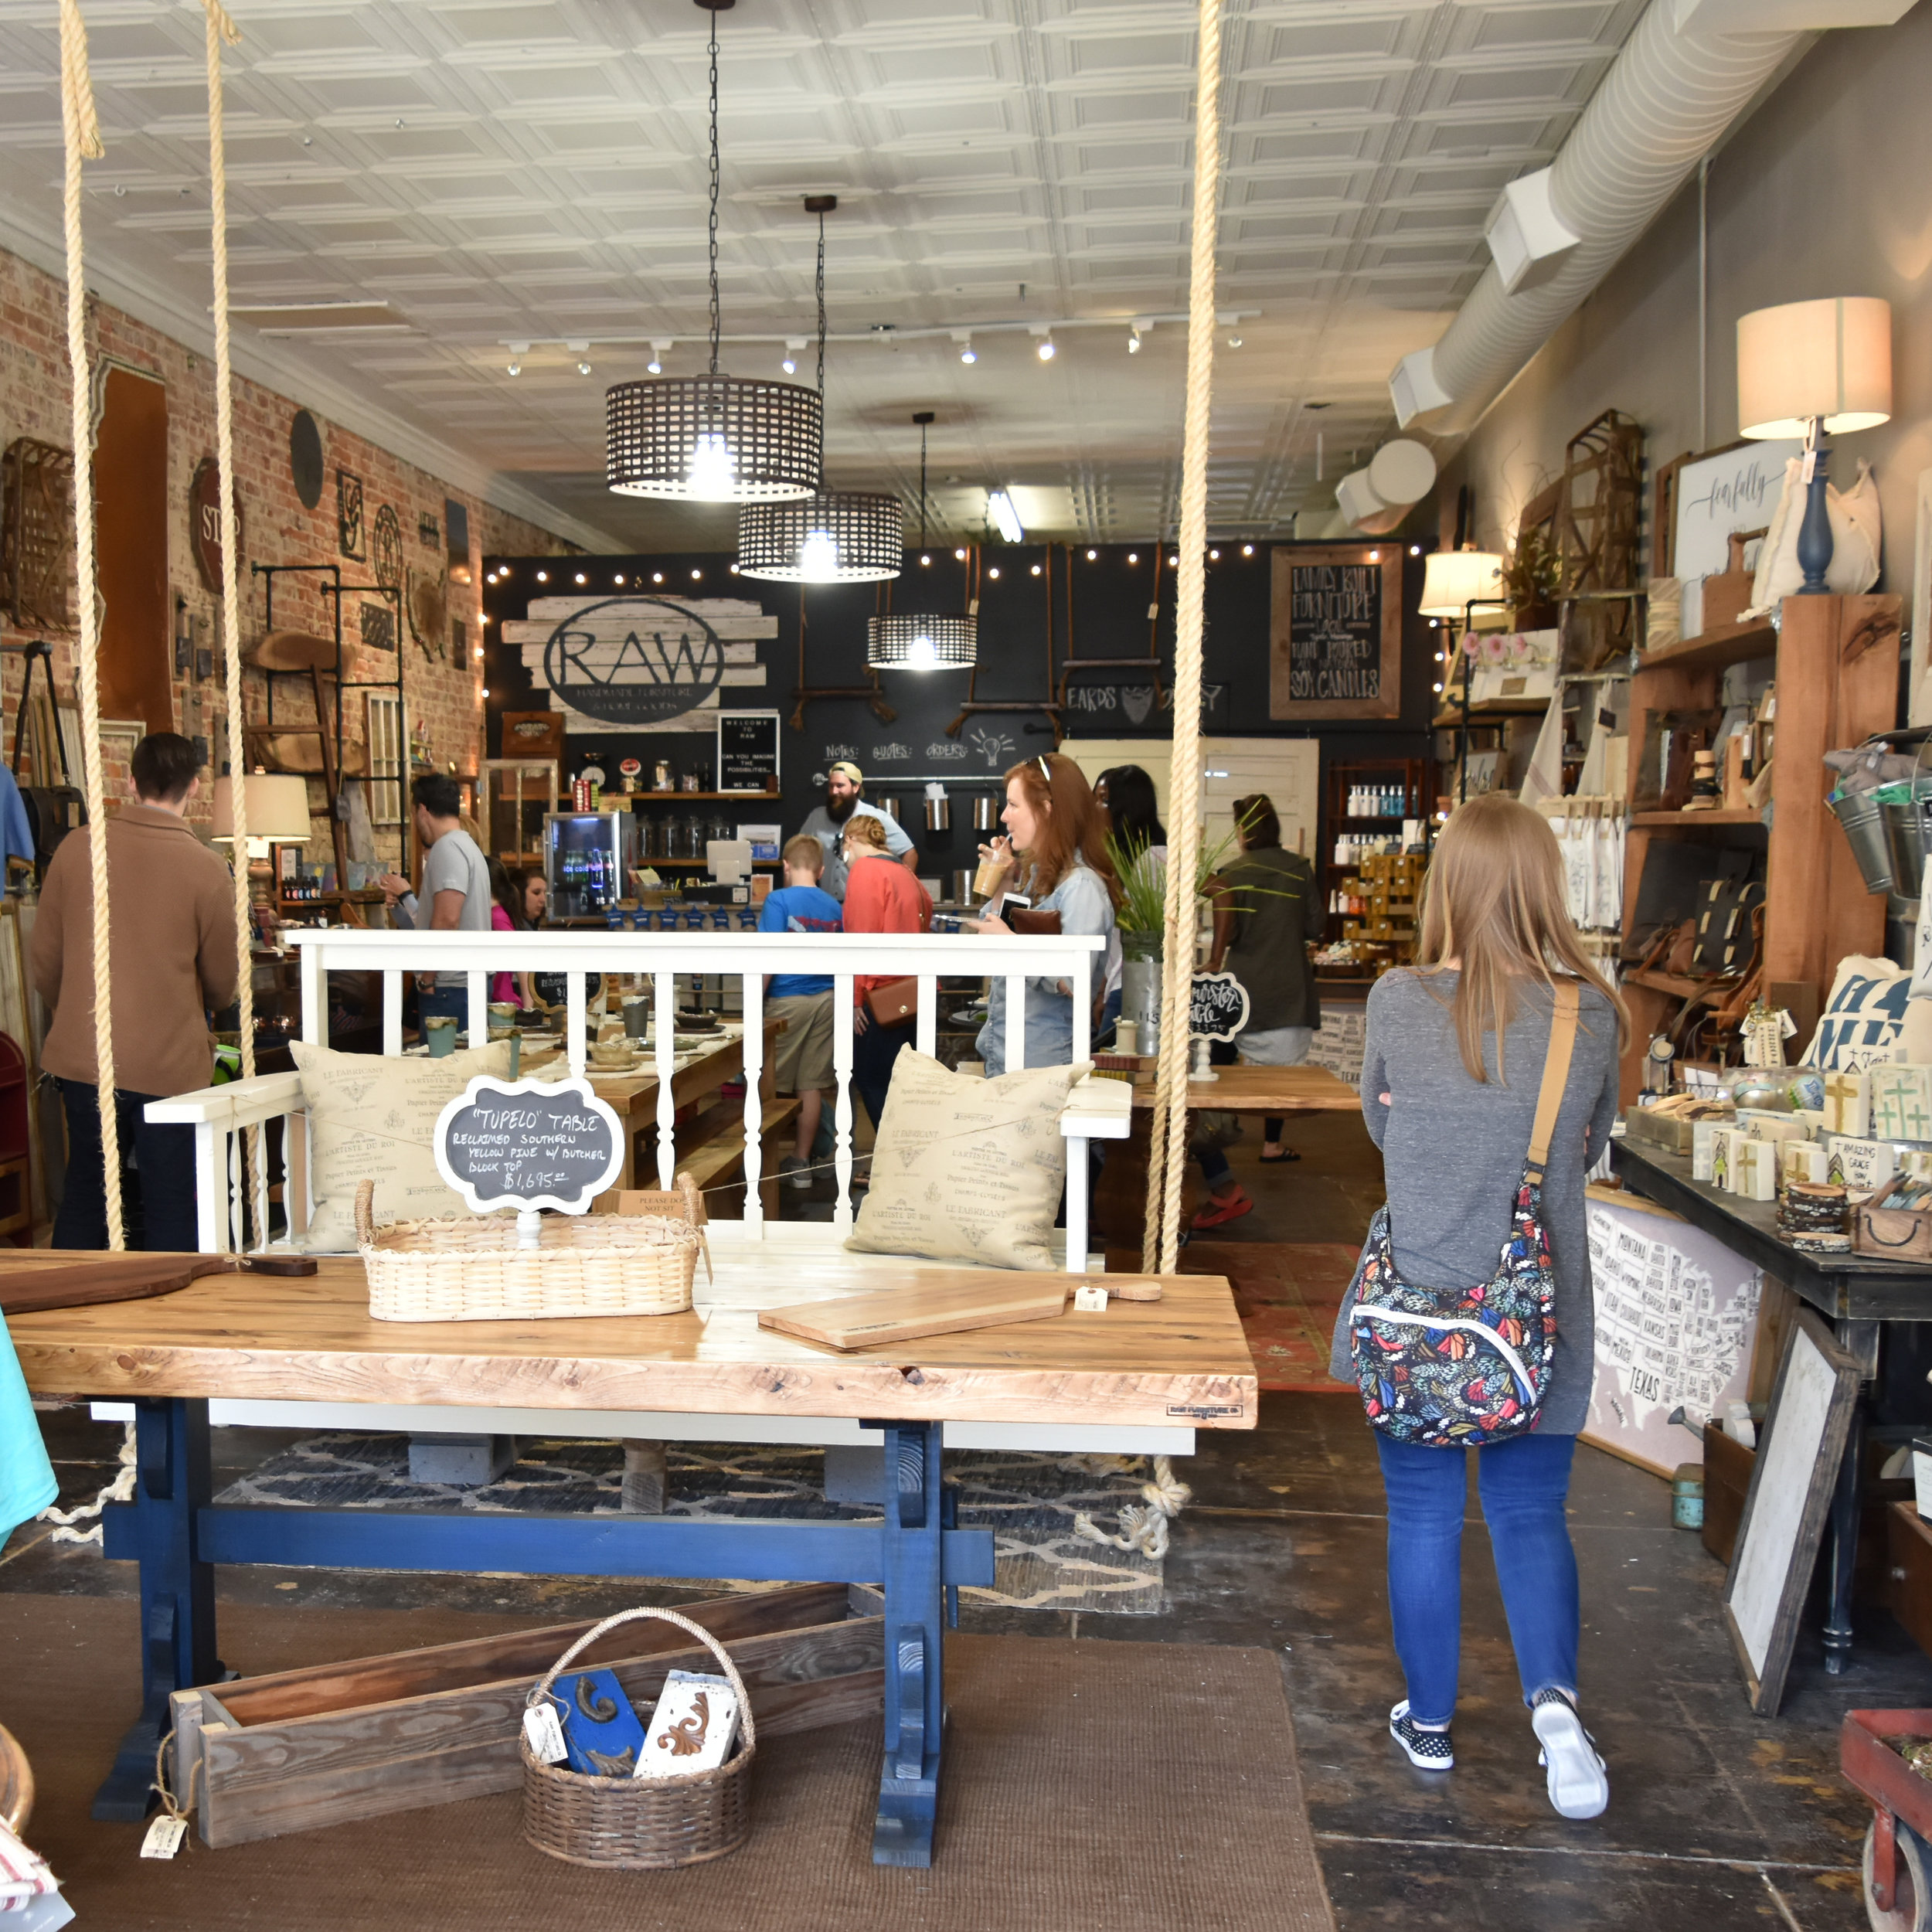 RAW FURNITURE    Beautifully hand-crafted Furniture made right here in Tupelo, RAW makes all kinds of one of a kind wooden wares. They can also do custom furniture if you have something specific in mind